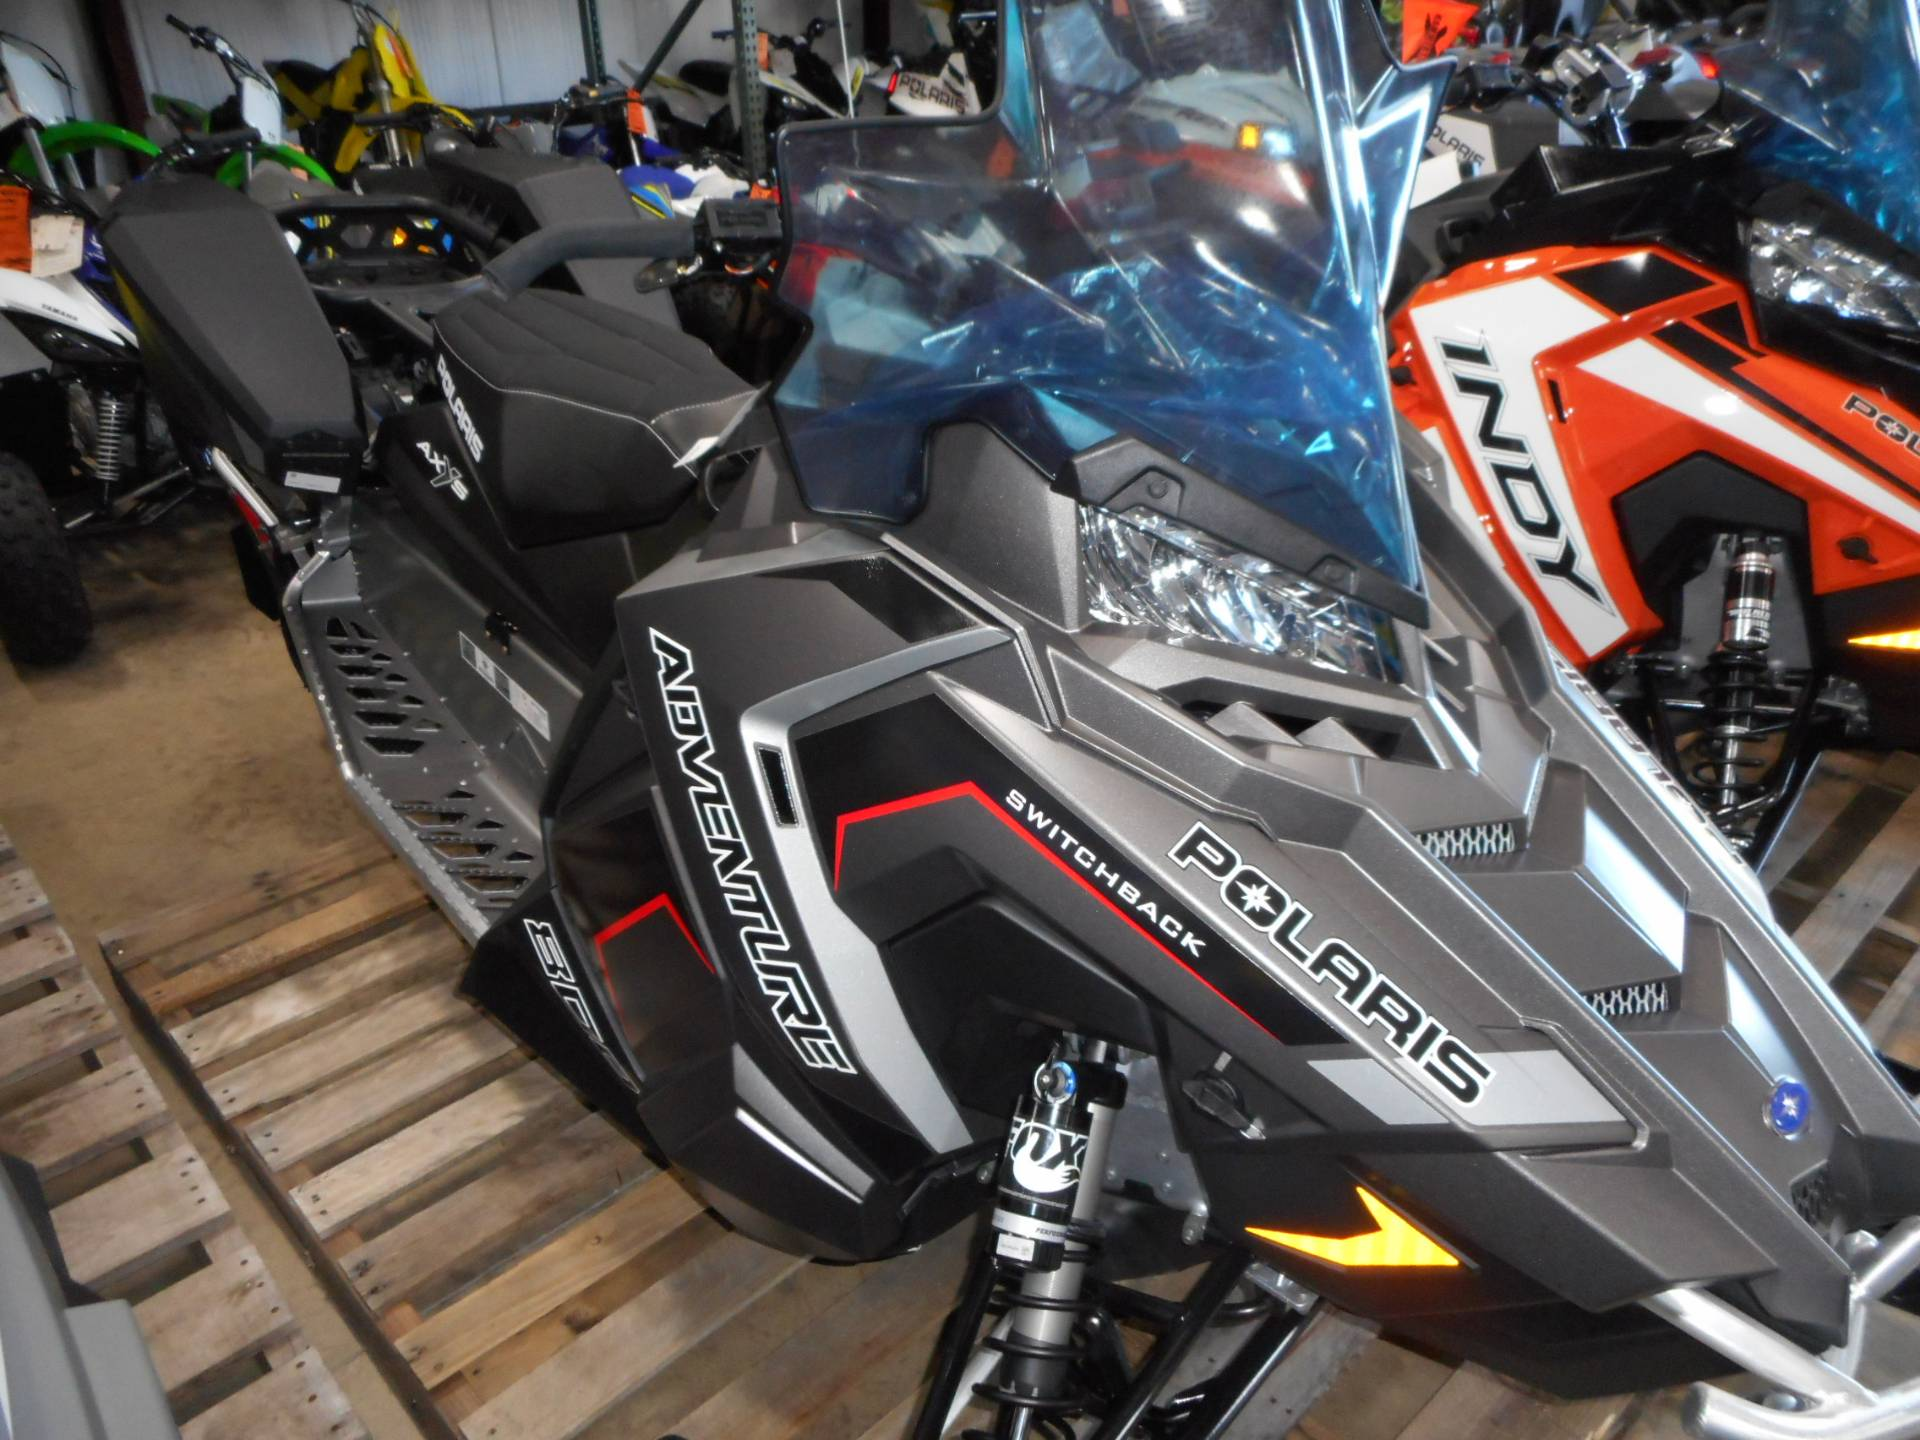 2019 Polaris 800 Switchback Adventure in Belvidere, Illinois - Photo 4